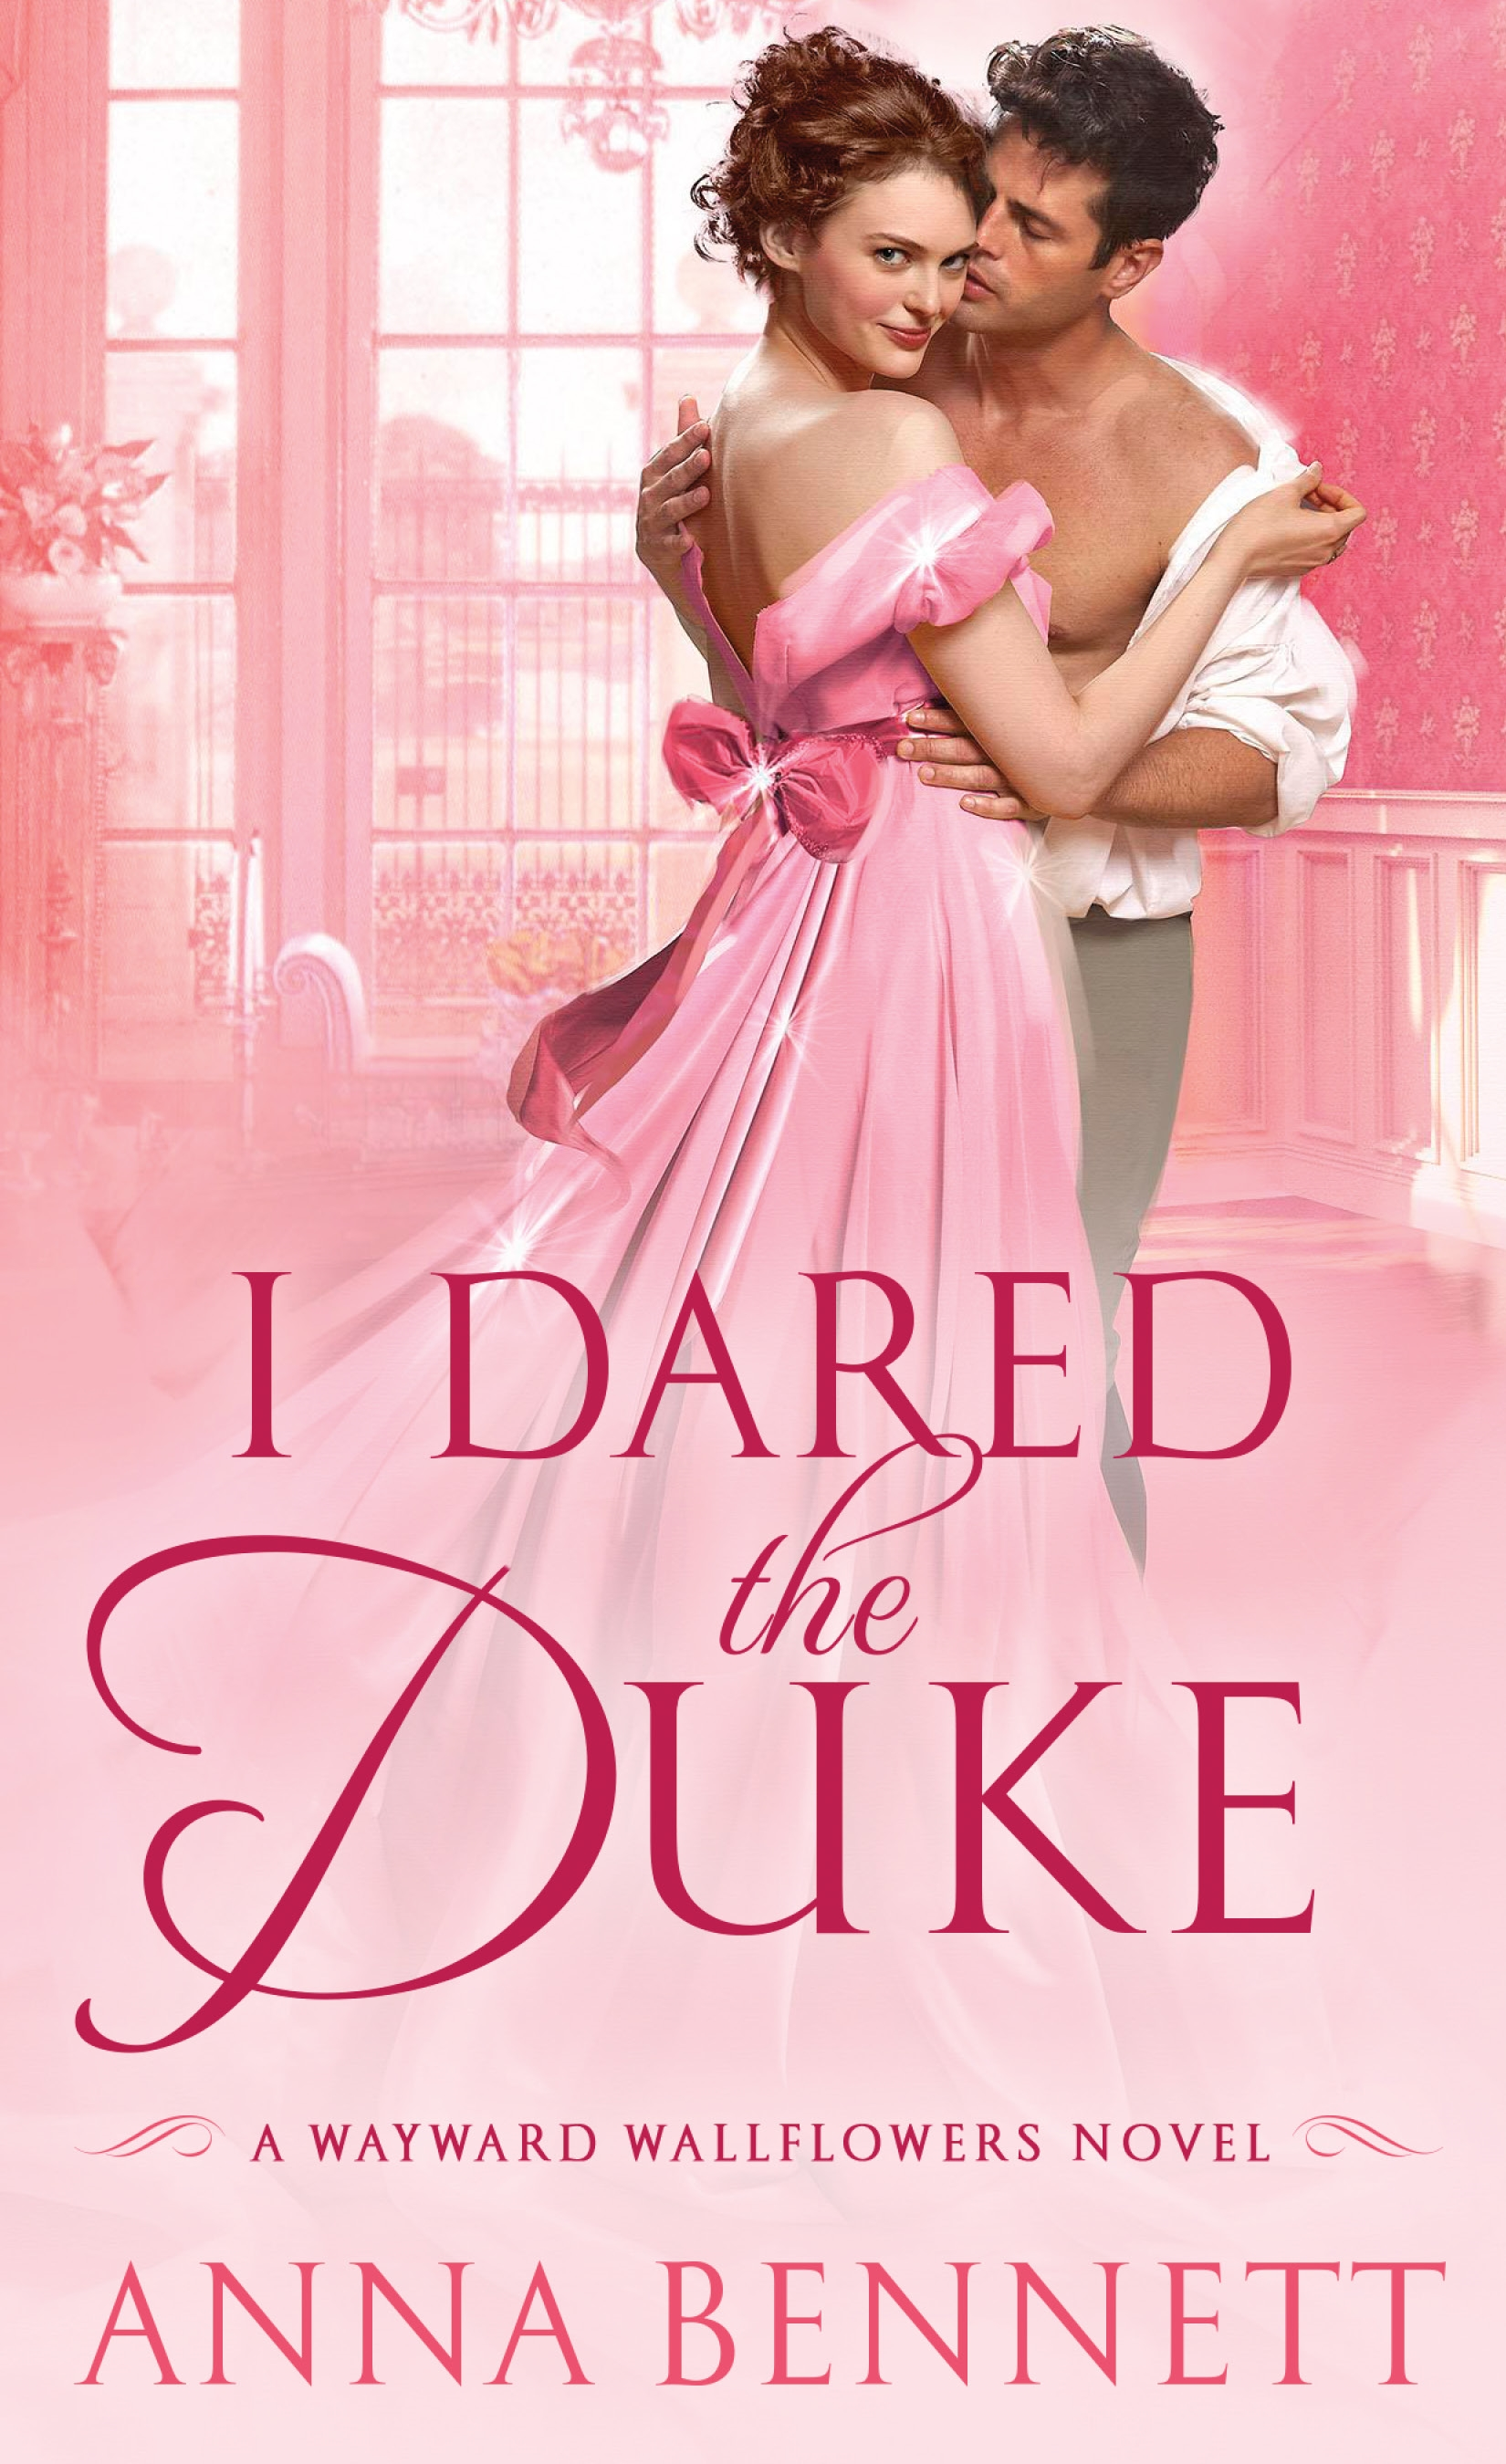 I Dared the Duke (Wayward Wallflowers Series #2) by Anna Bennett